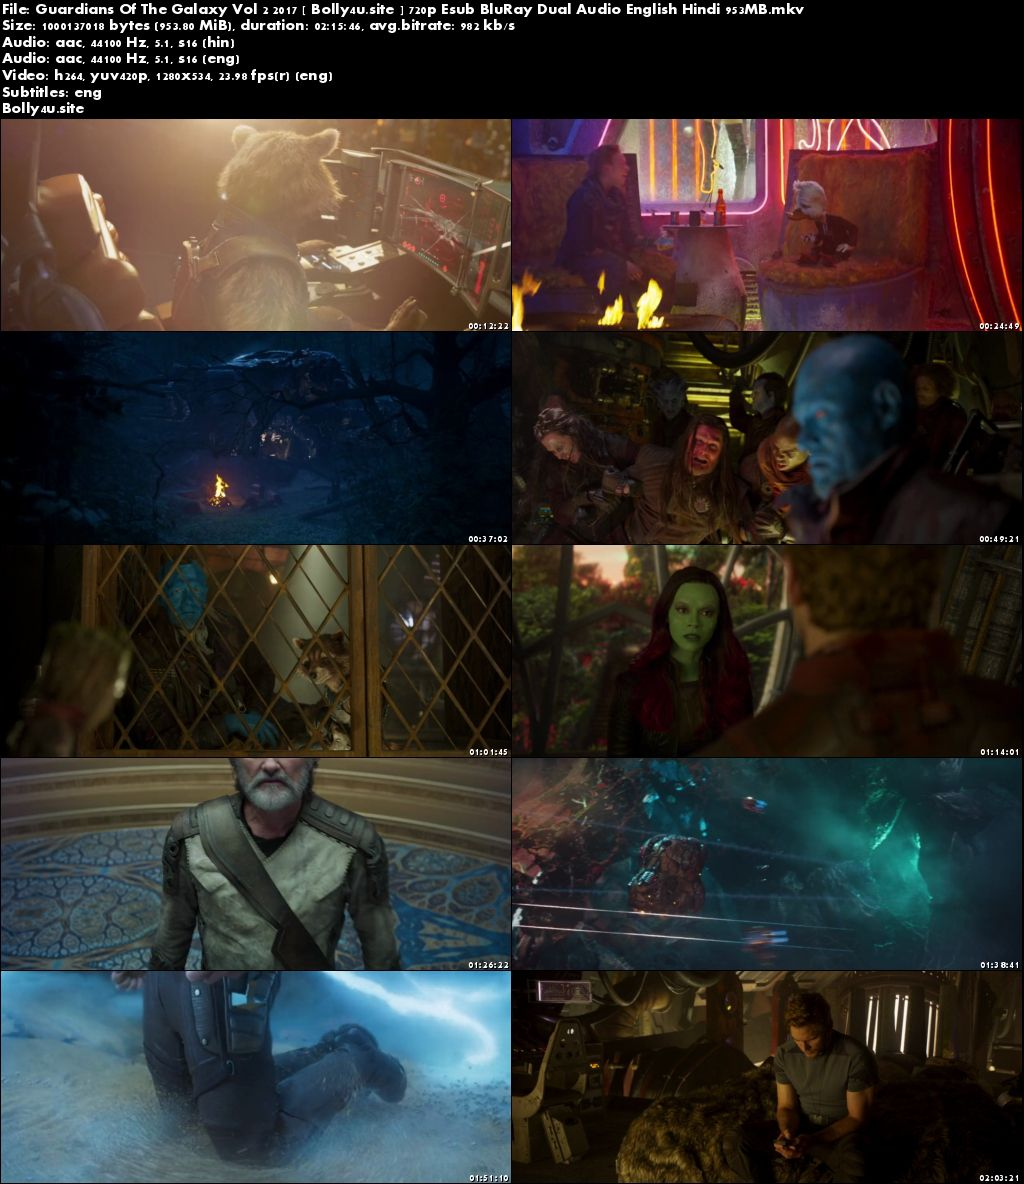 guardians of the galaxy vol 2 in hindi dubbed torrent movie download 2017